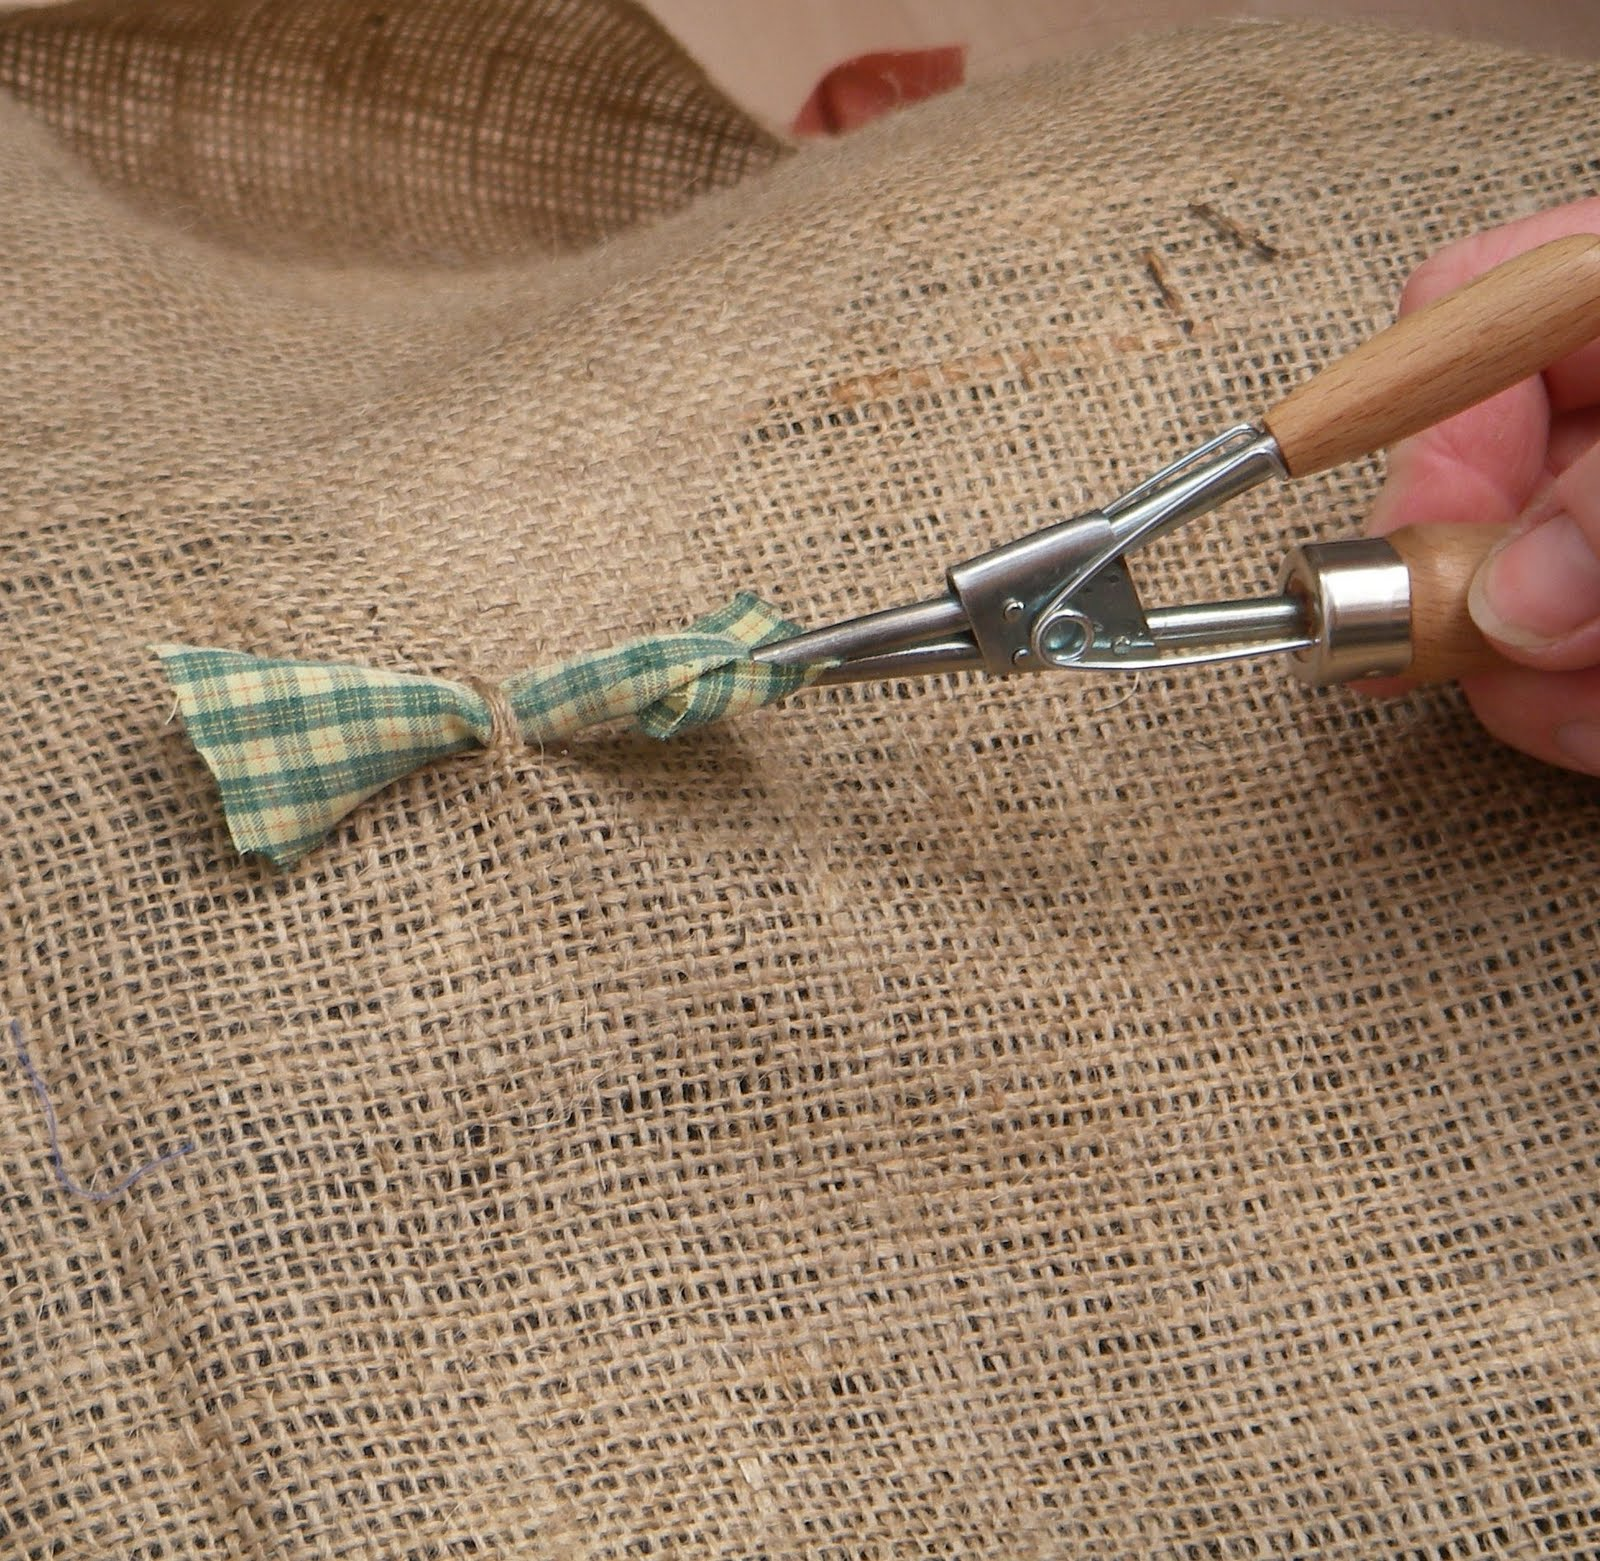 The Next Strip Should Be Threaded Into Hessian